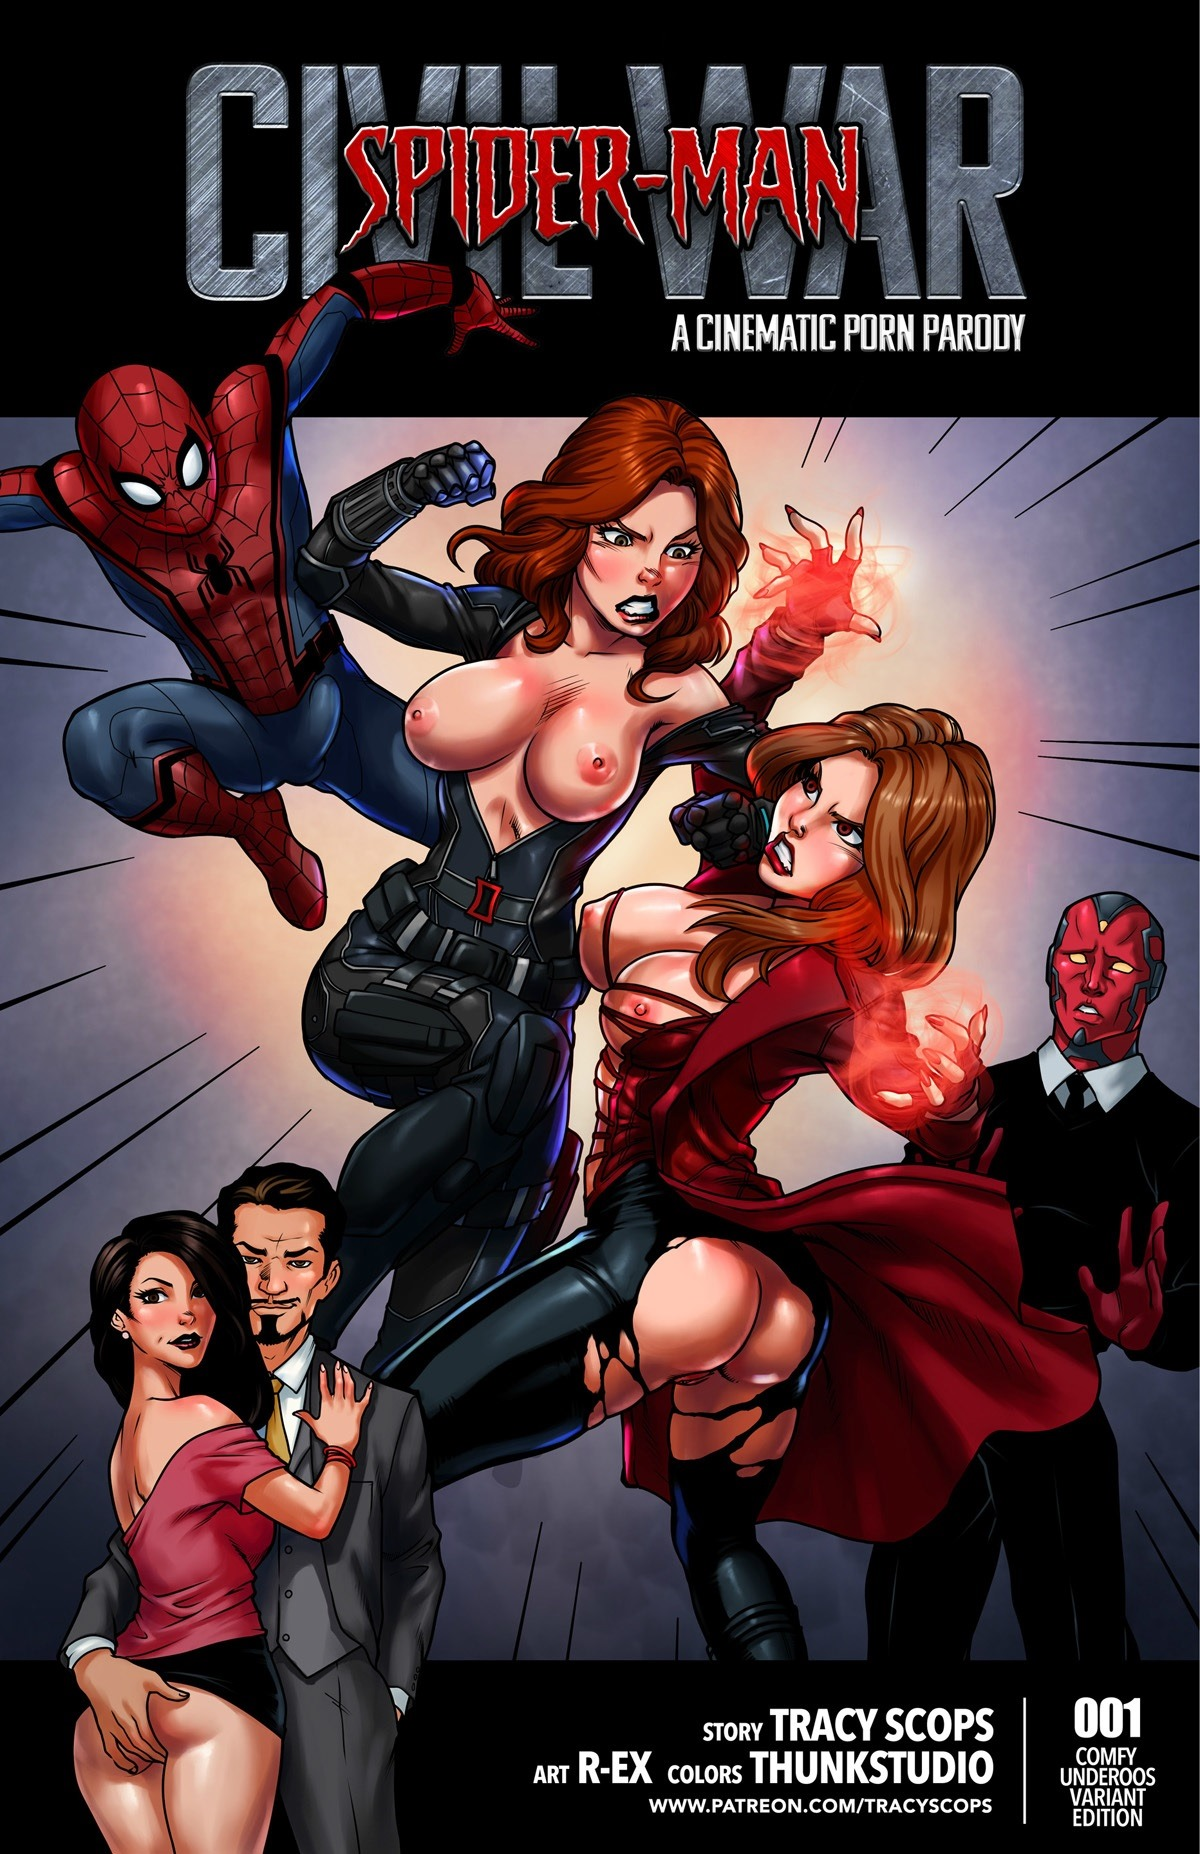 SureFap xxx porno Spider-Man - [Tracy Scops] - Civil War